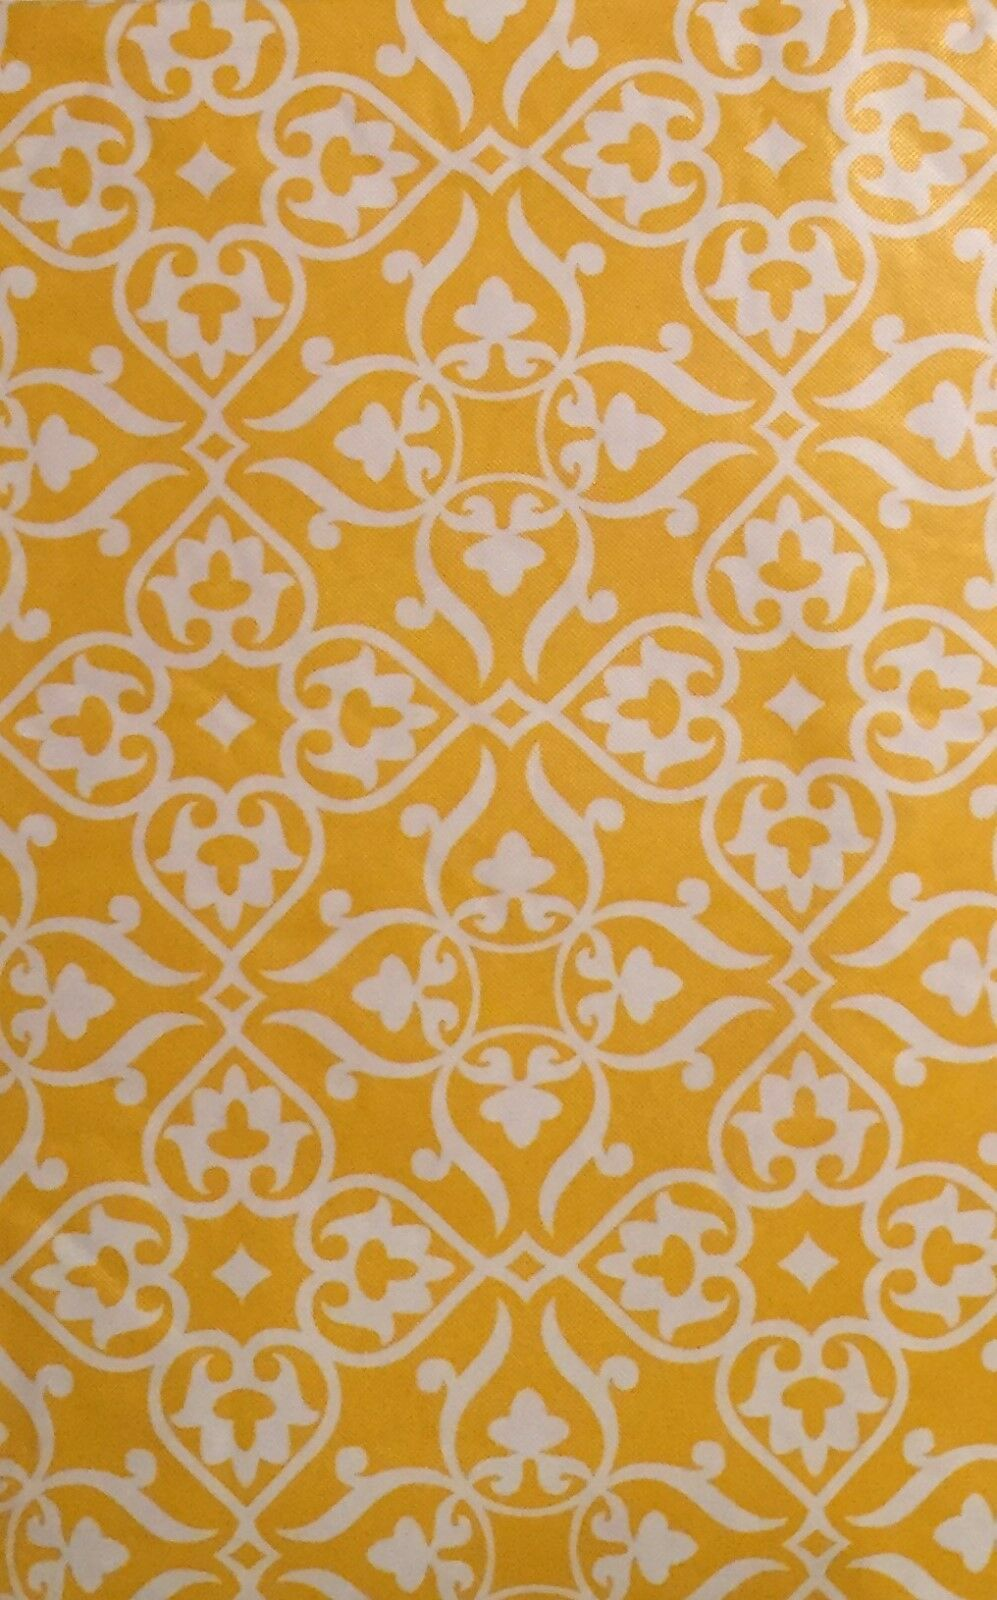 Elrene Yellow Floral Heart Damask vinyl flannel back tablecloth 52 Square